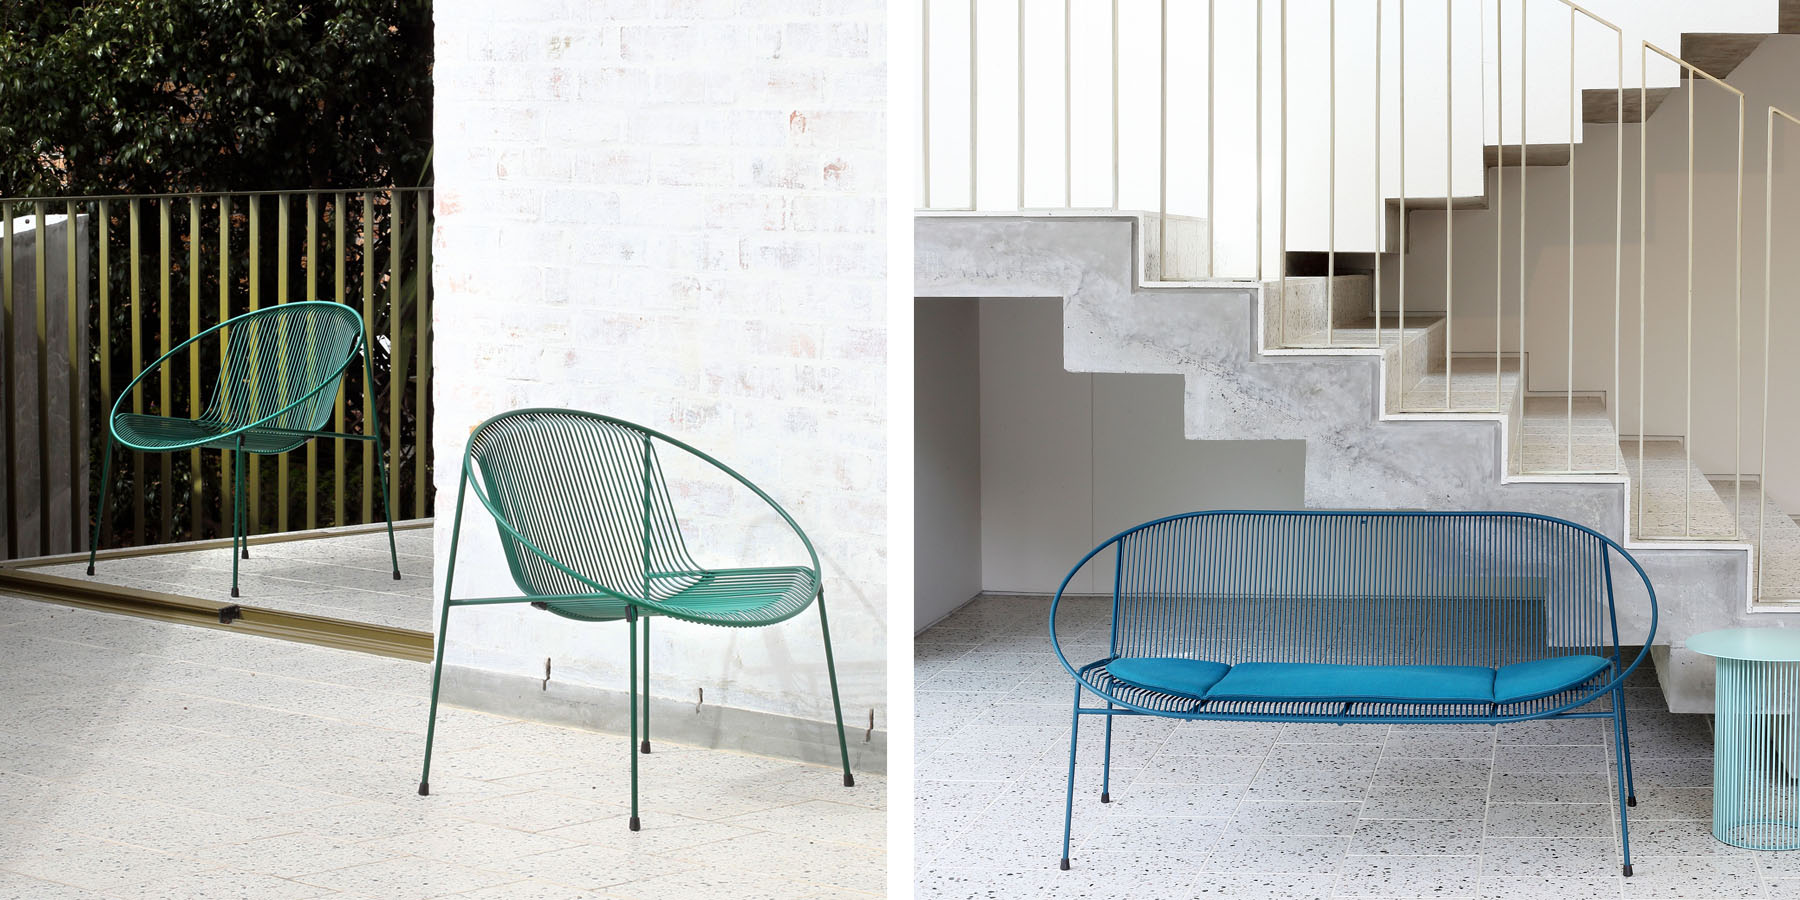 Haldane Martin, Hula outdoor furniture collection, green and blue outdoor tables and chairs.  Haldane Martin outdoor furniture is available at Sarza home goods and furniture store in Rye New York.